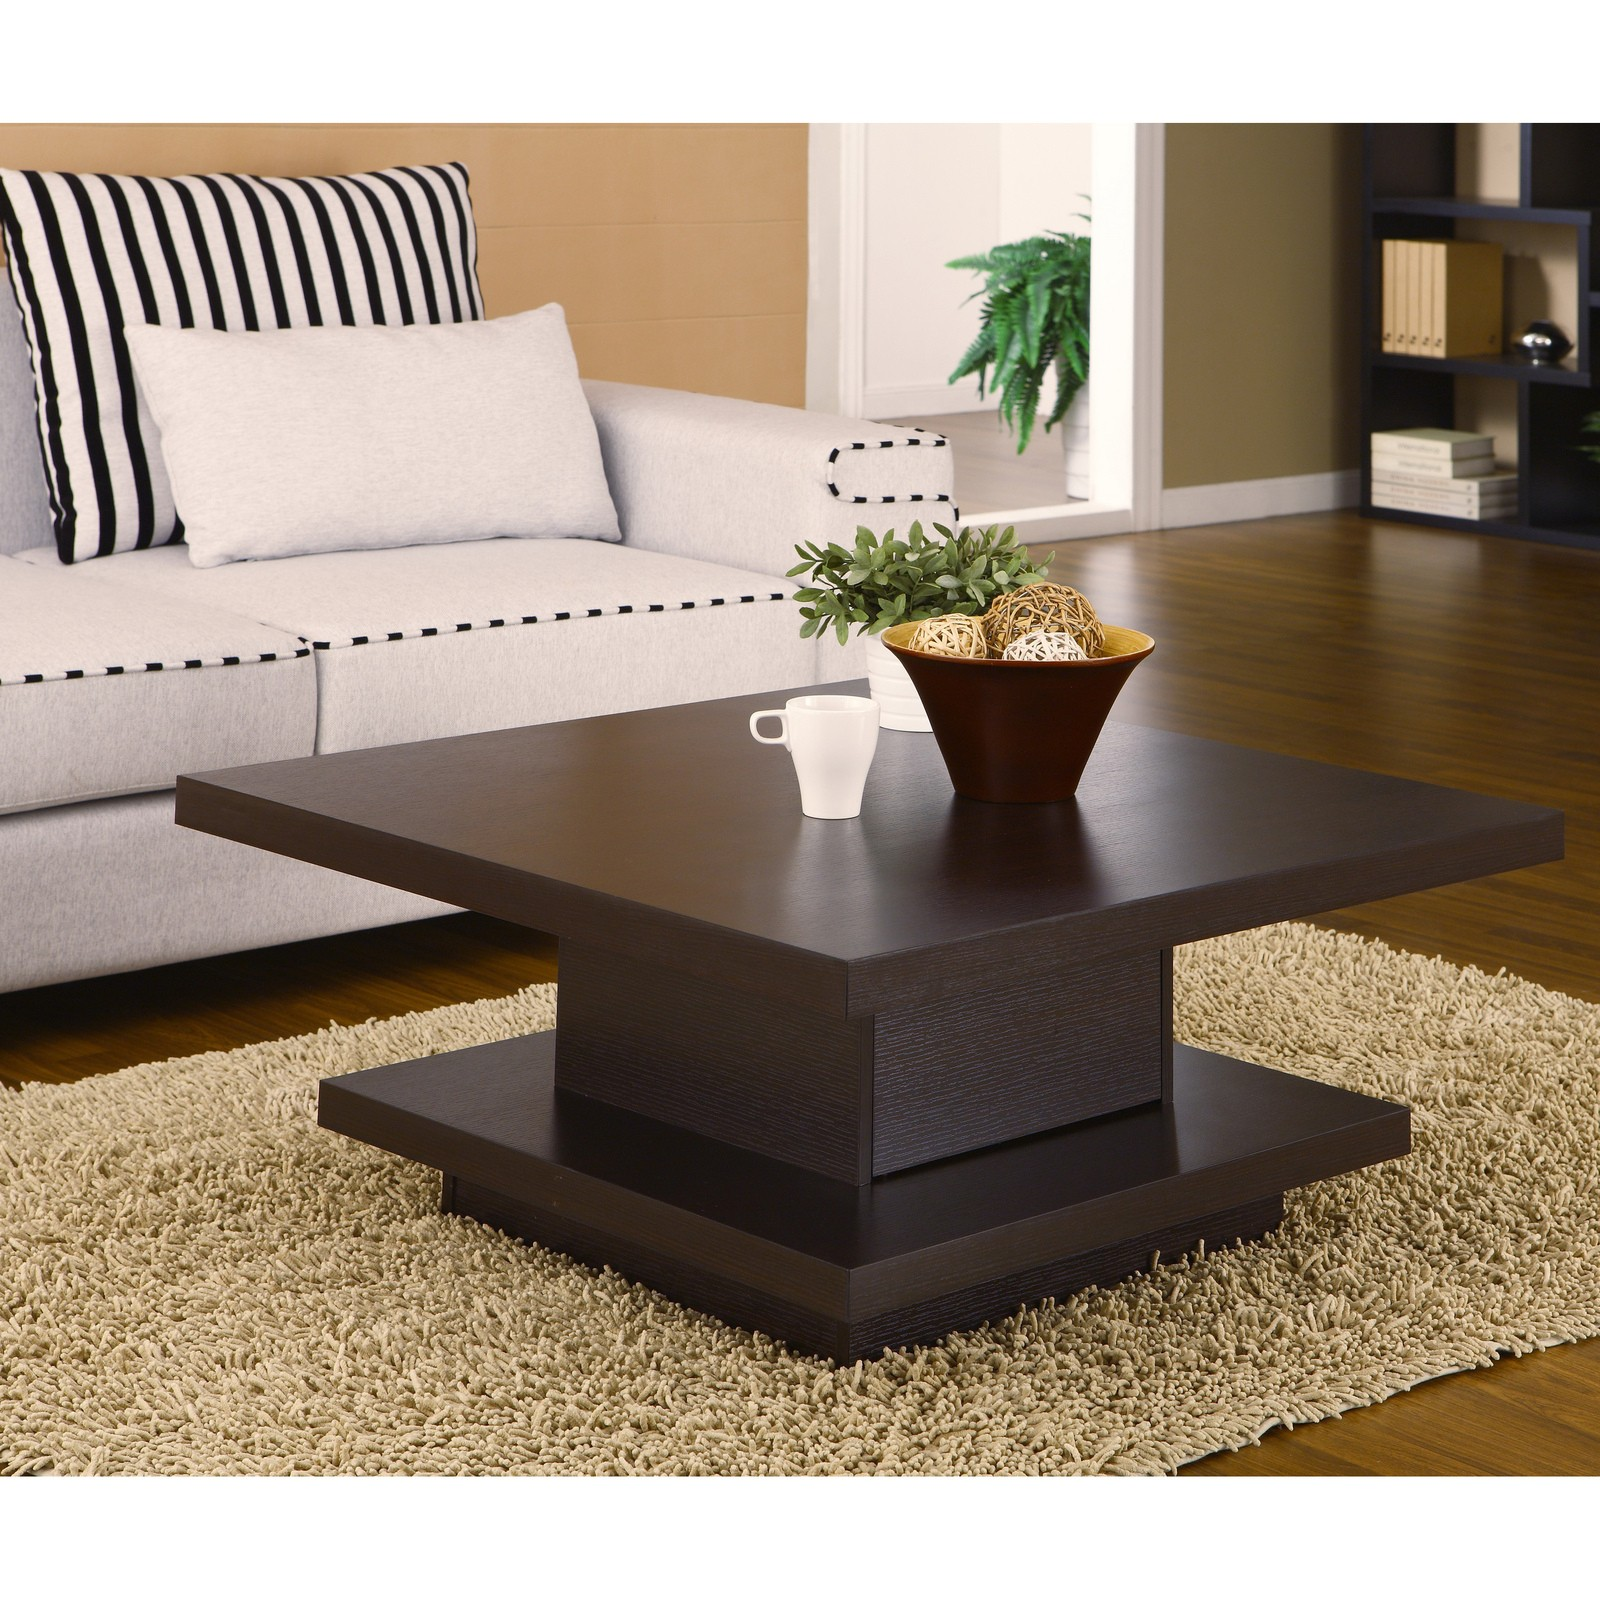 Nice Wakiaka Pagoda Coffee Table. These Modern Coffee Tables Are Great For Tying  Together Living Room Pictures